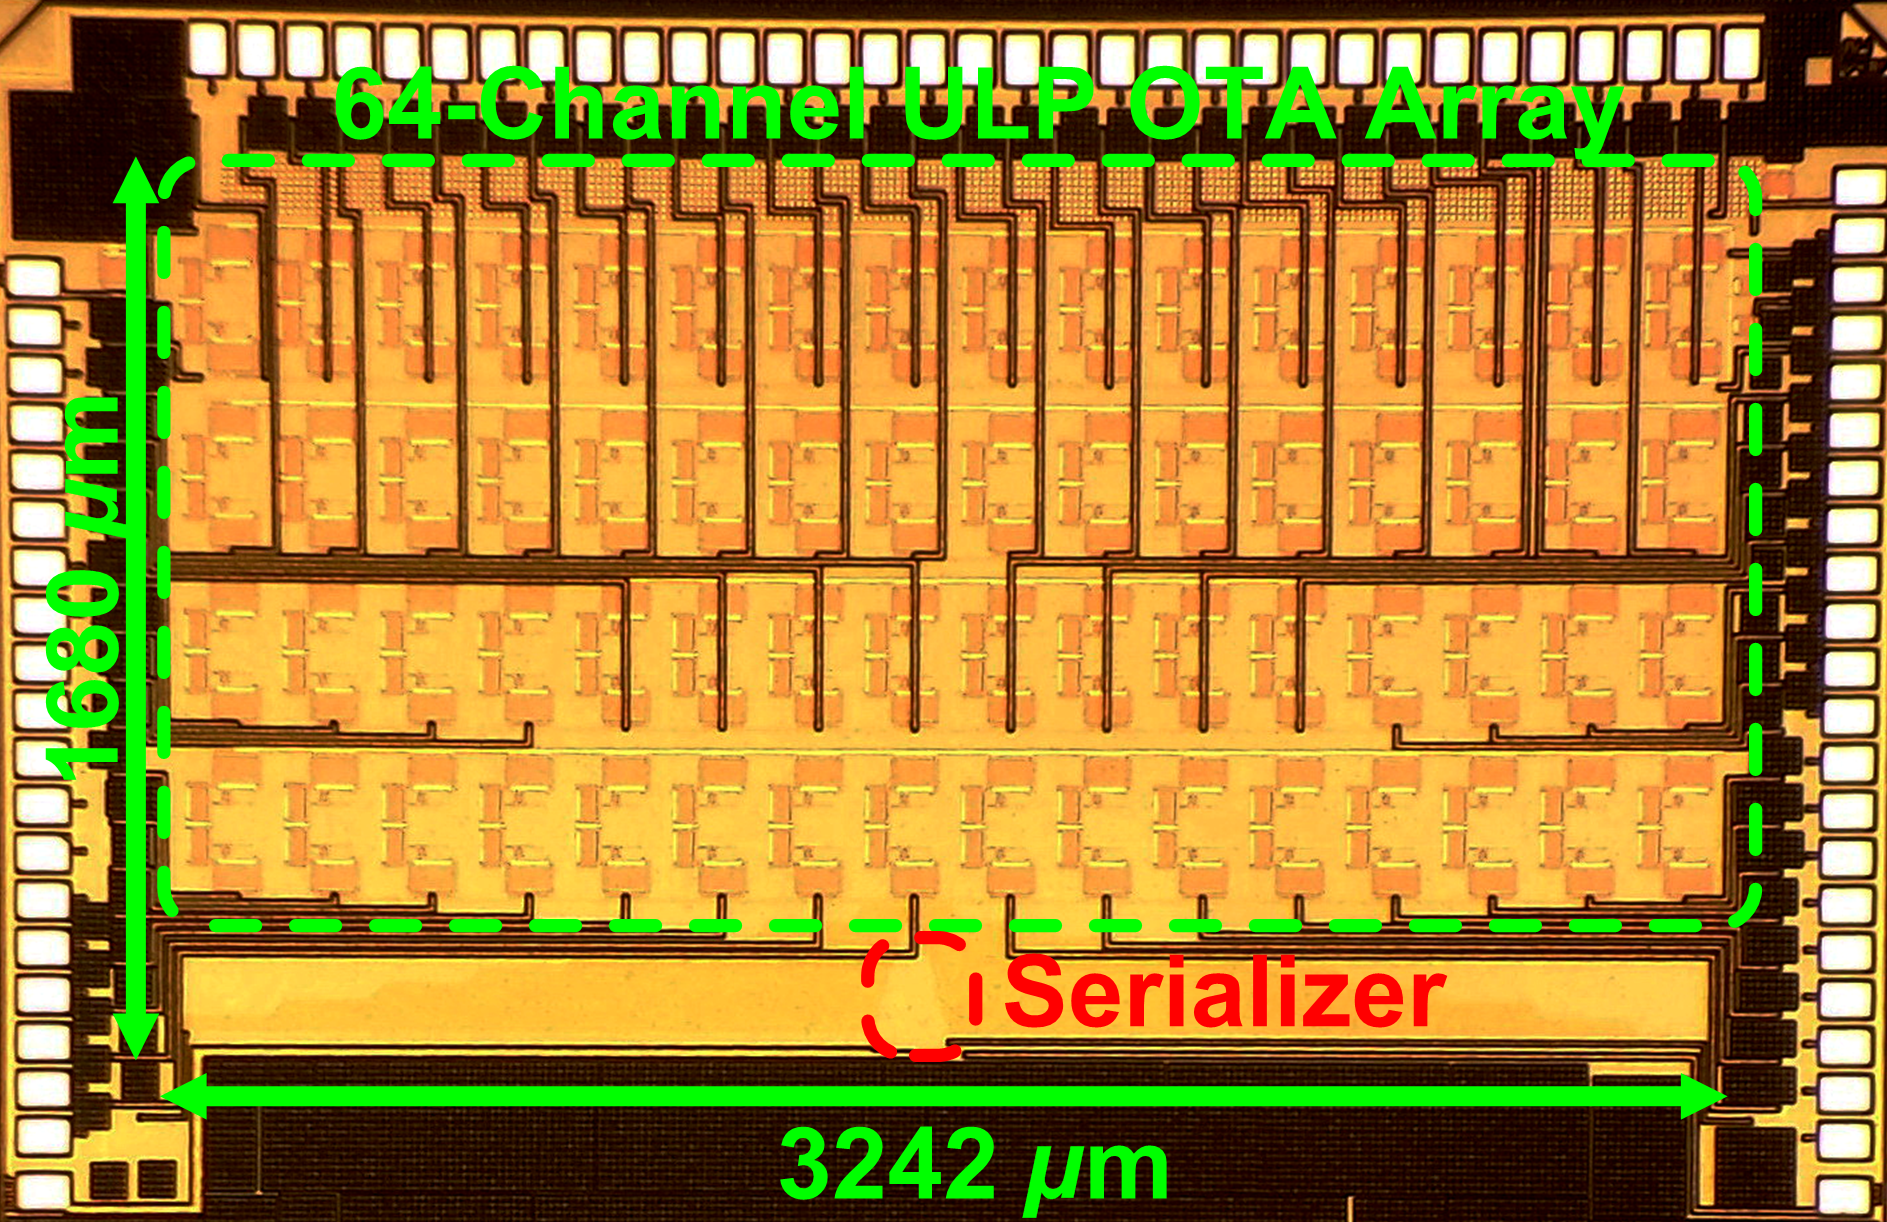 ULP Amplifier Array on 130nm CMOS